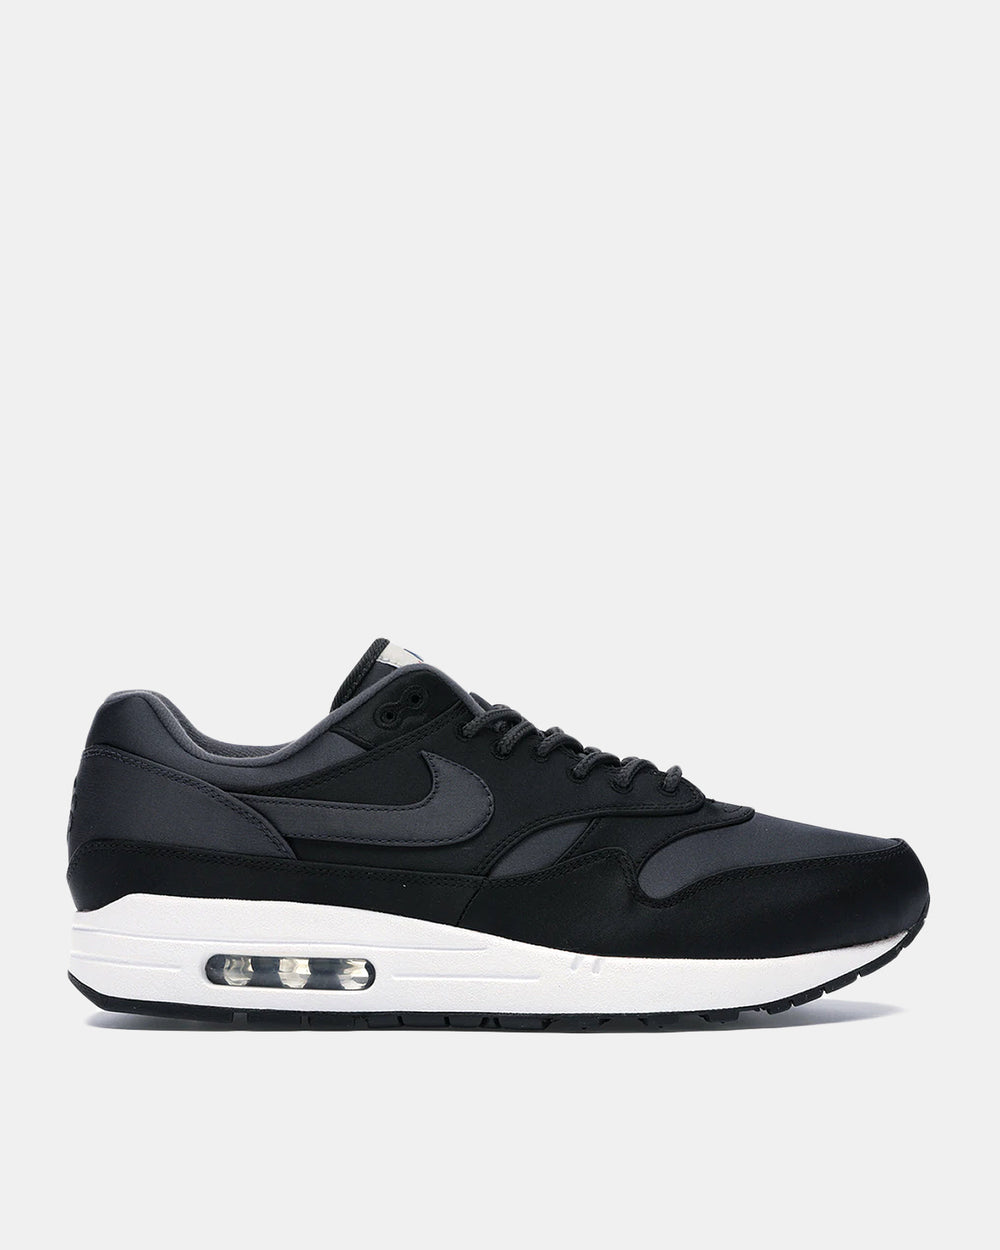 Air Max 1 'Satin Pack' (Black | White)